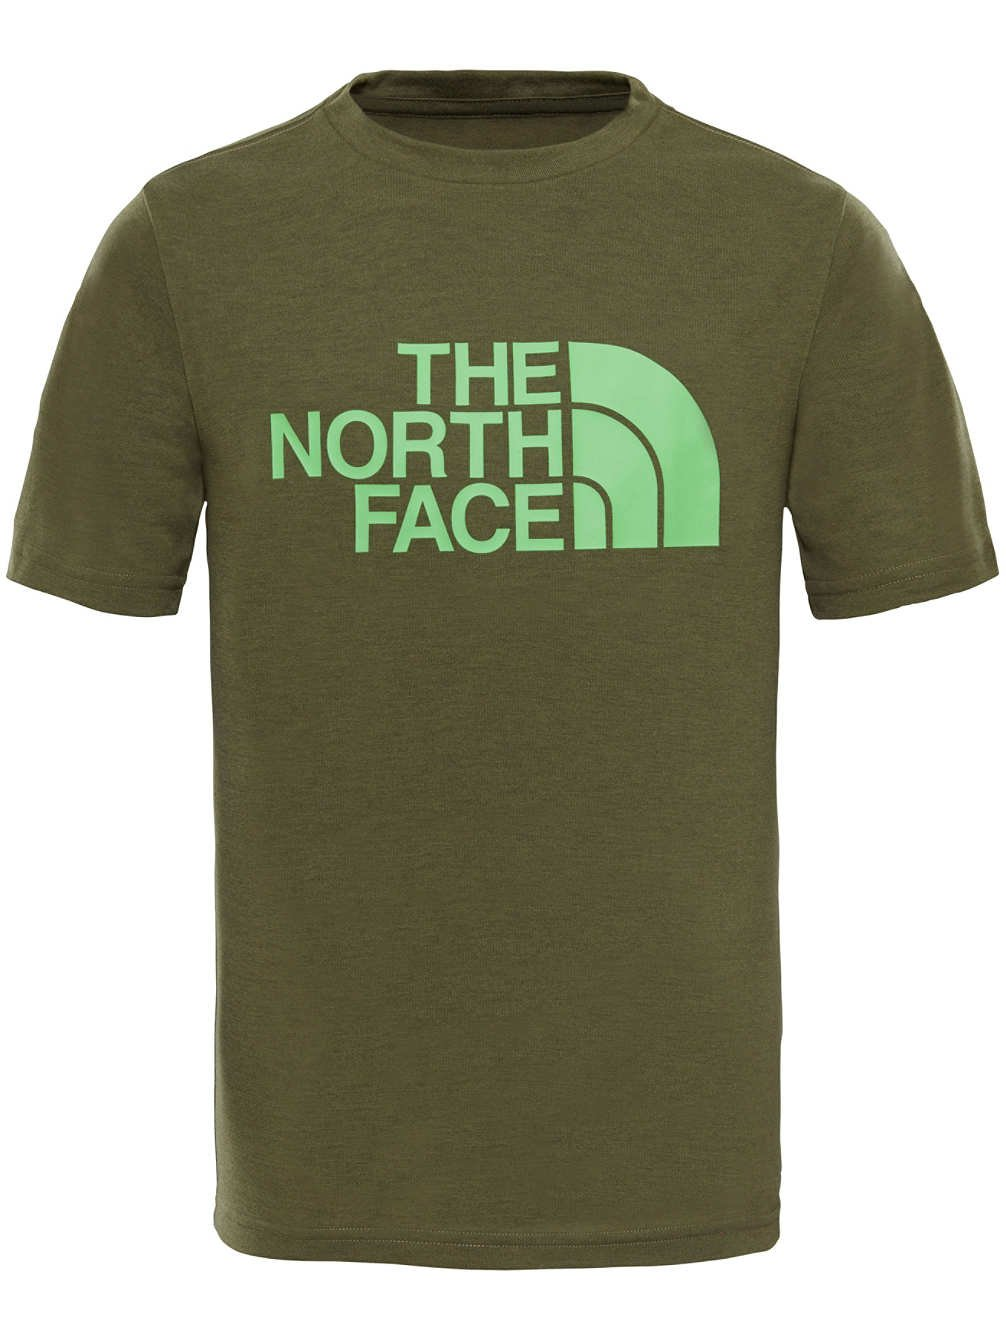 THE NORTH FACE B SS Reaxion T Shirt, Kids, Children's, CC0P Children' s XS